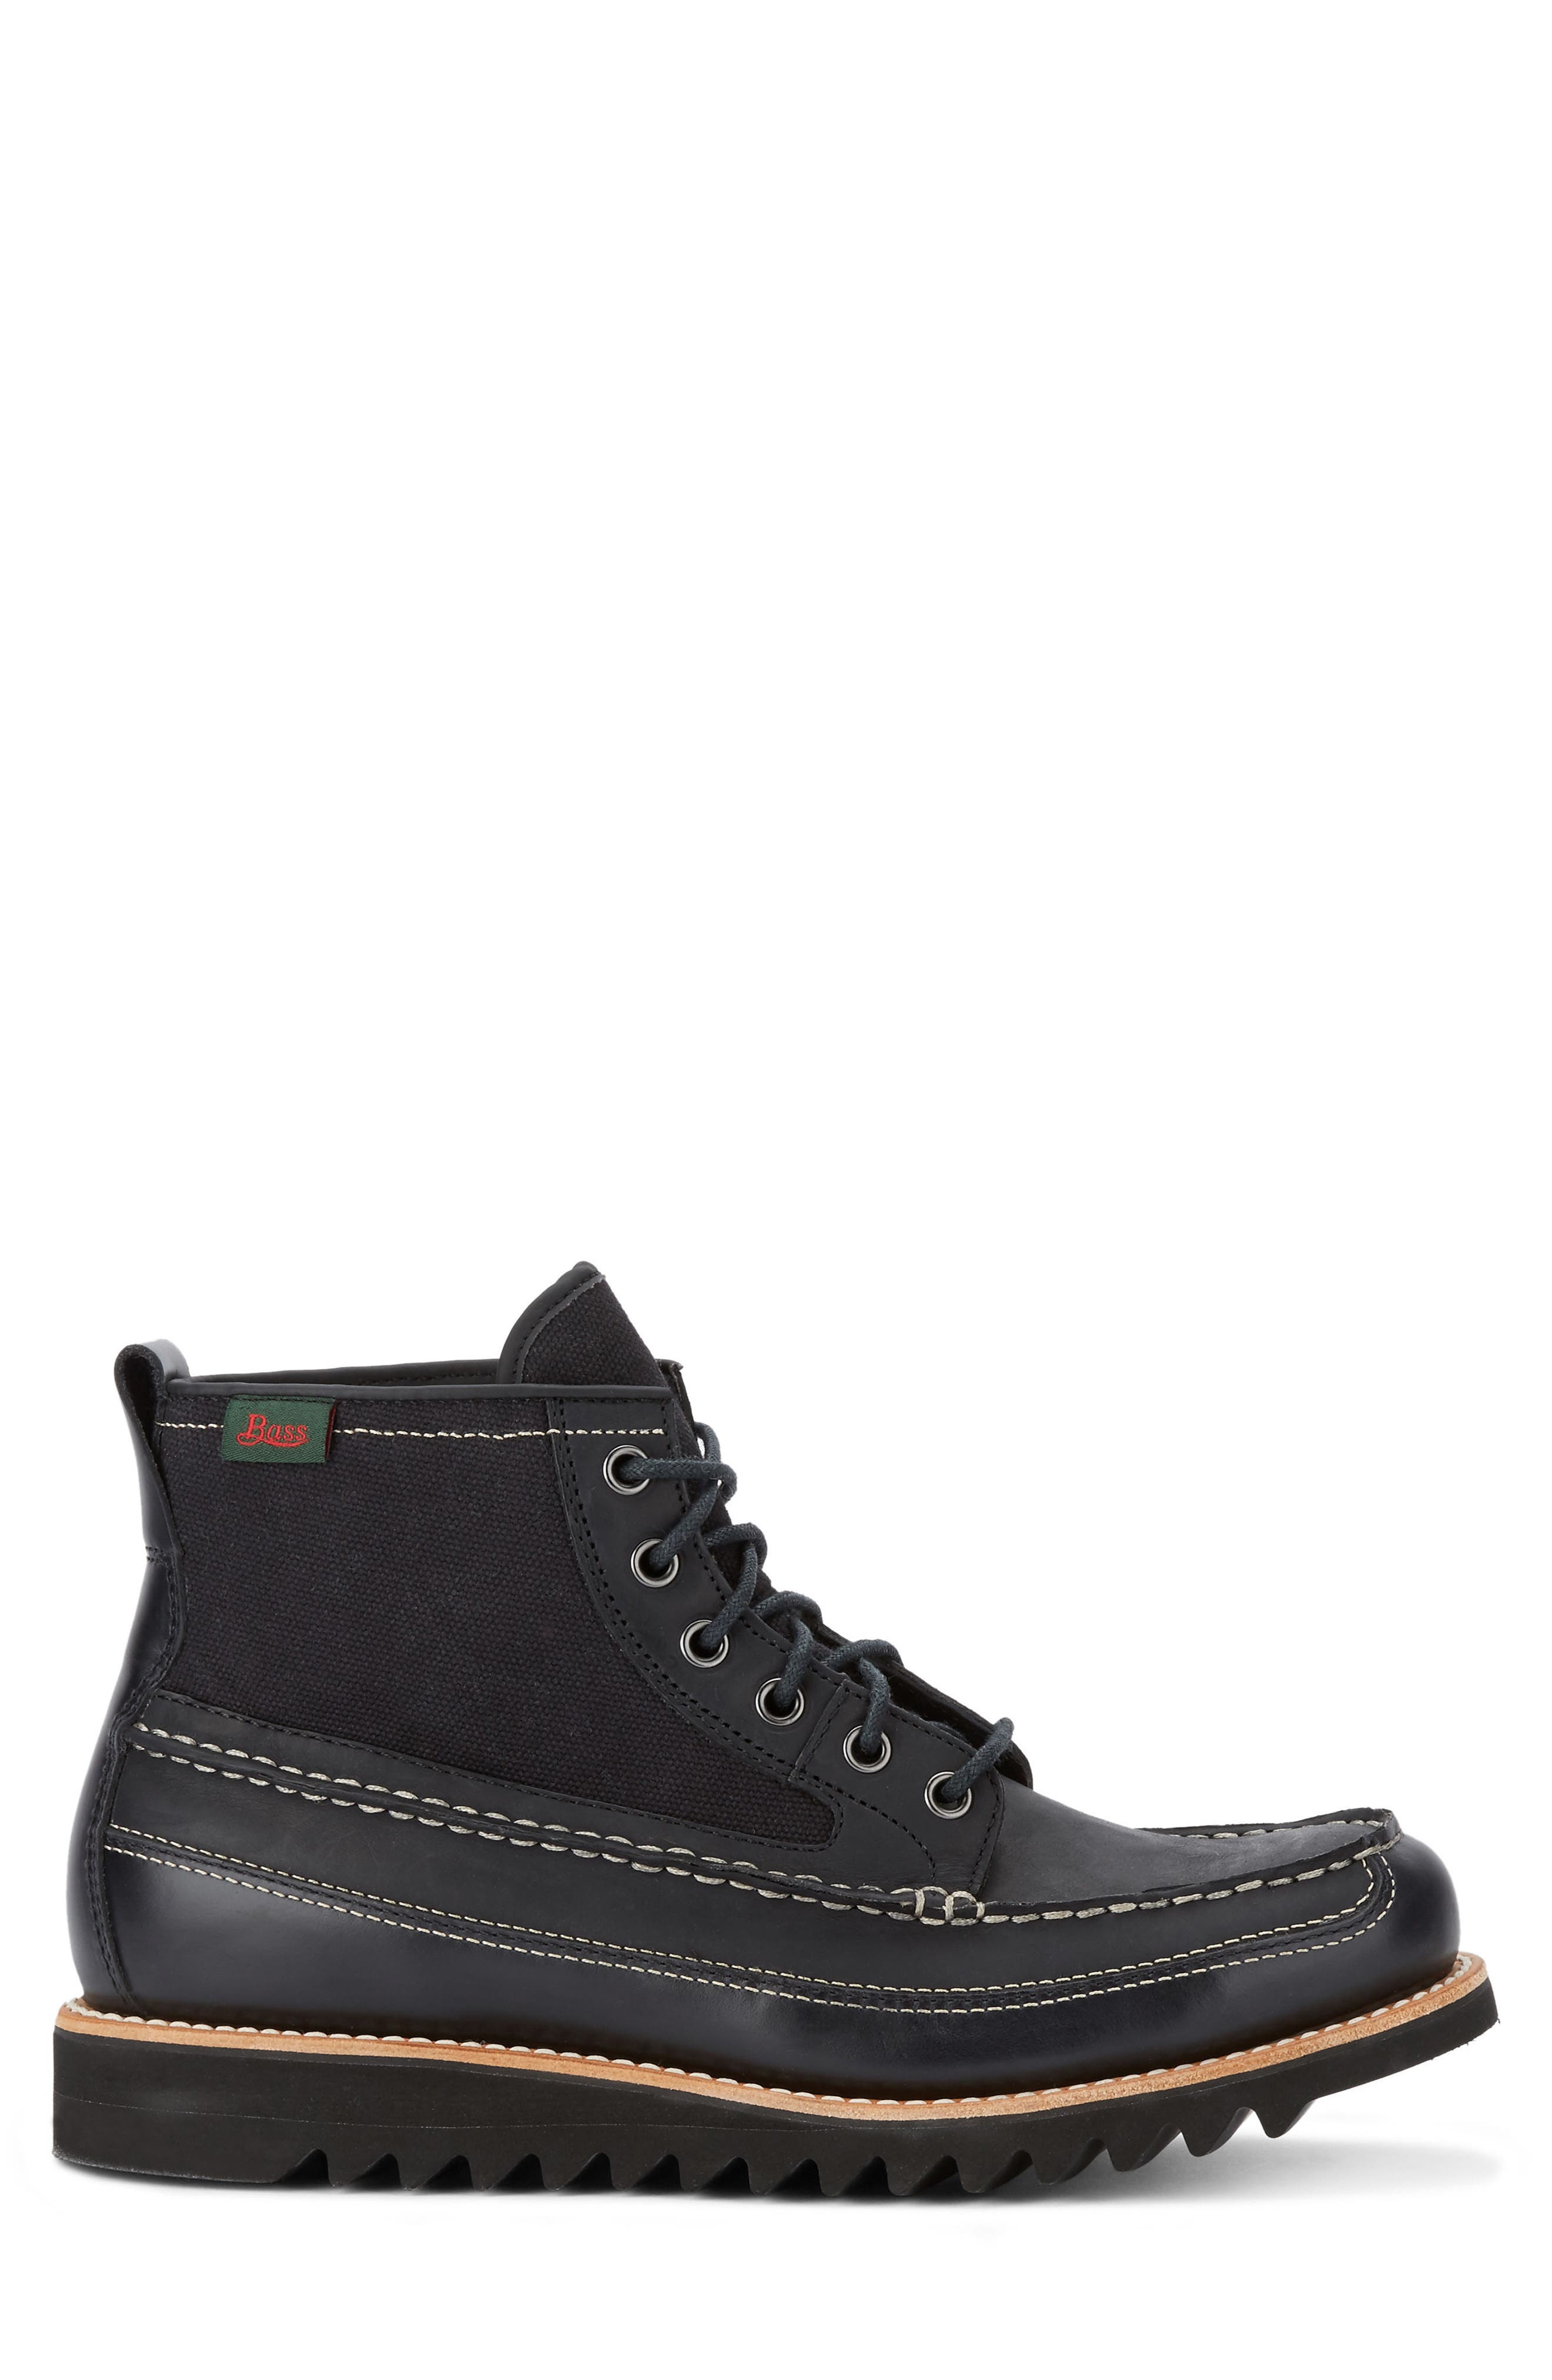 Nickson Razor Moc Toe Boot,                             Alternate thumbnail 3, color,                             001